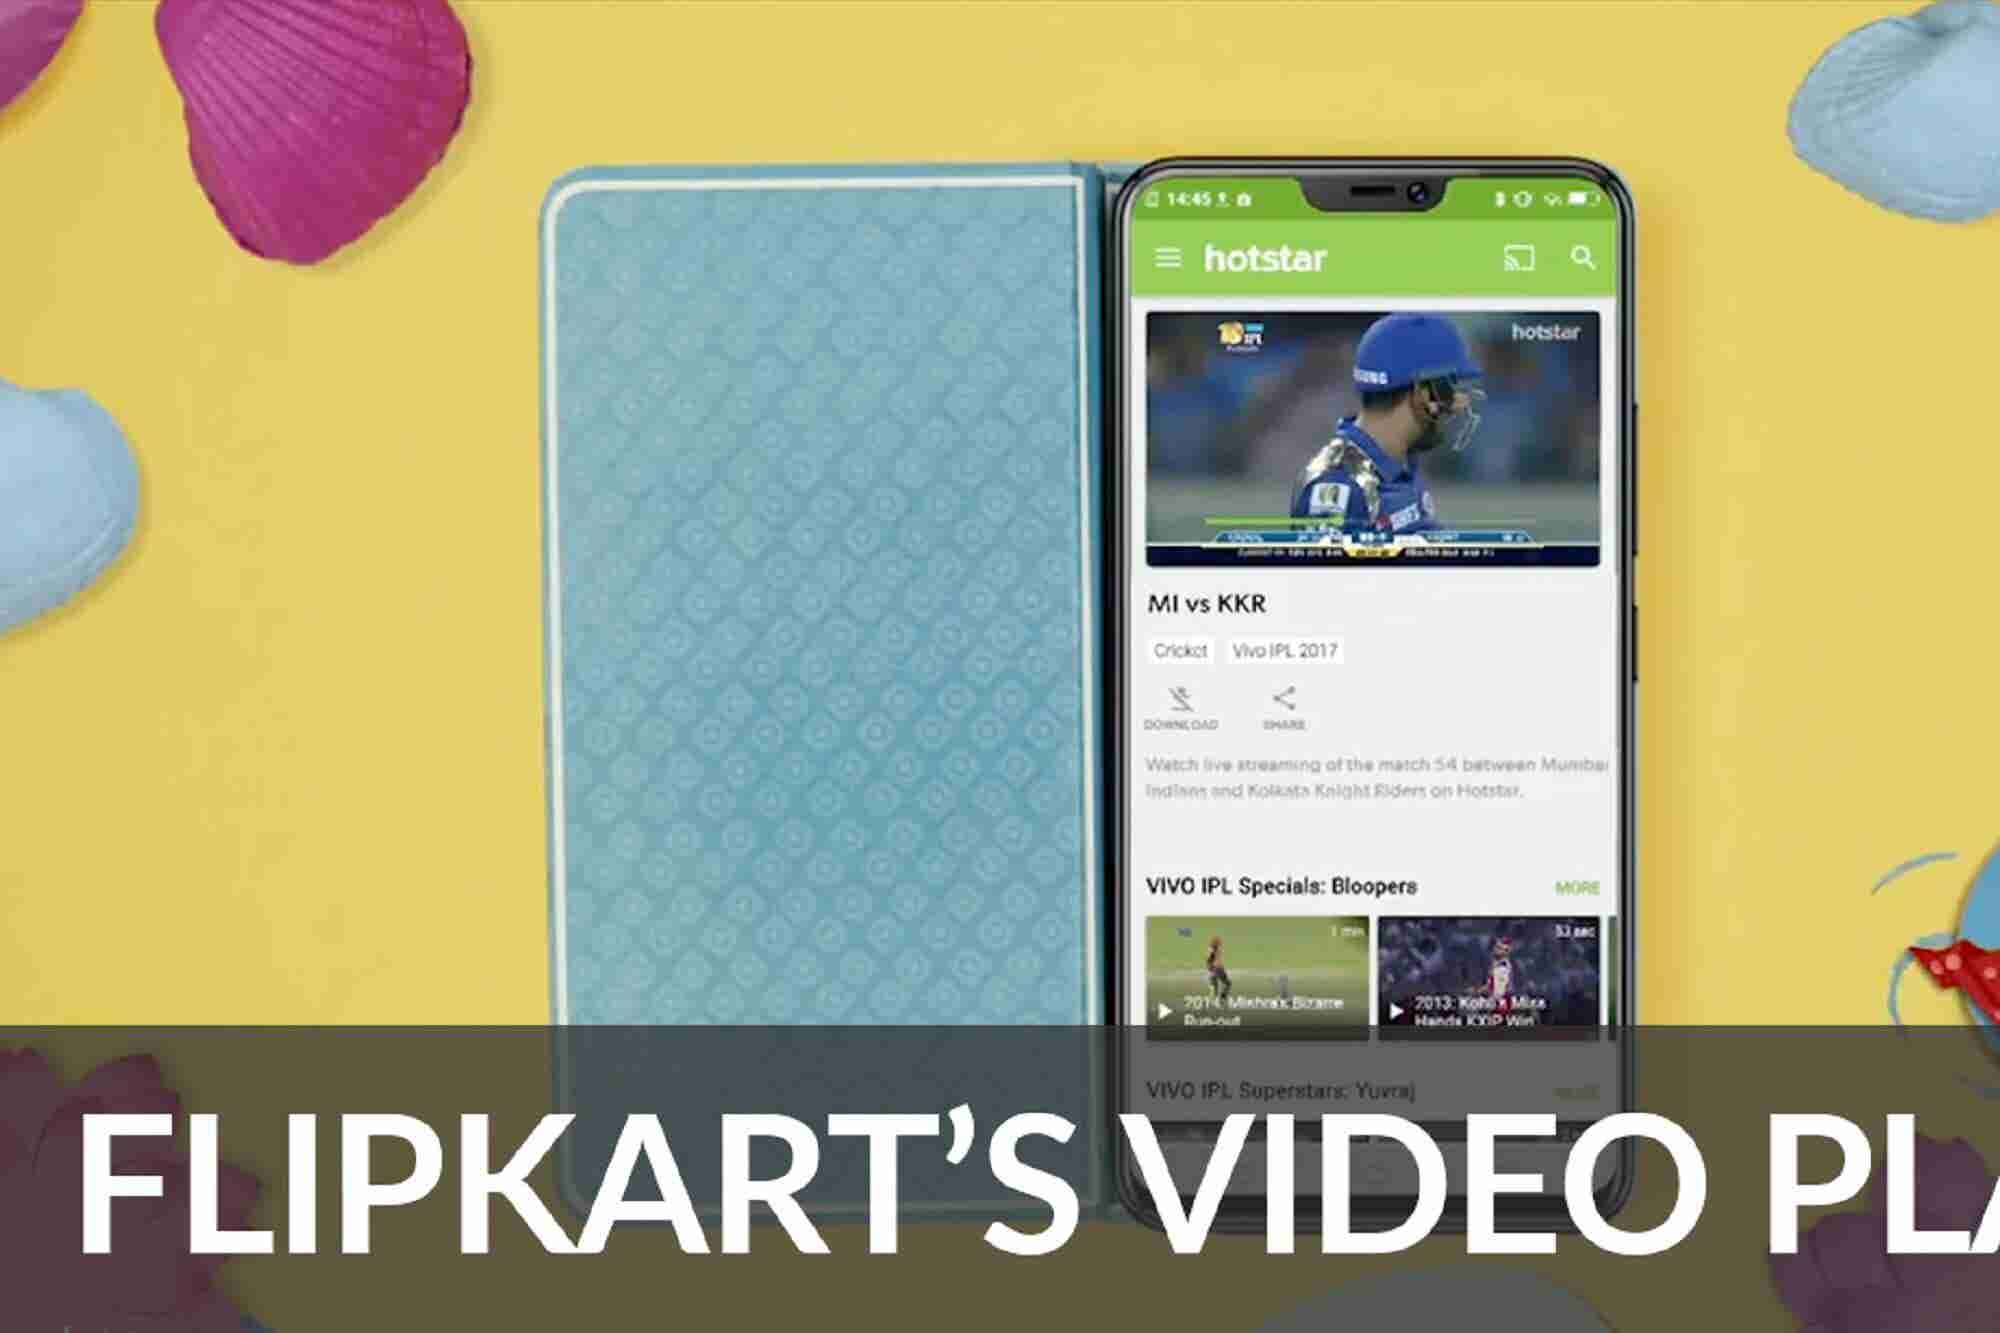 Flipkart Plans to Enter Video Space & SalesForce Founders Acquire Times Magazine: 4 Things to Know Today